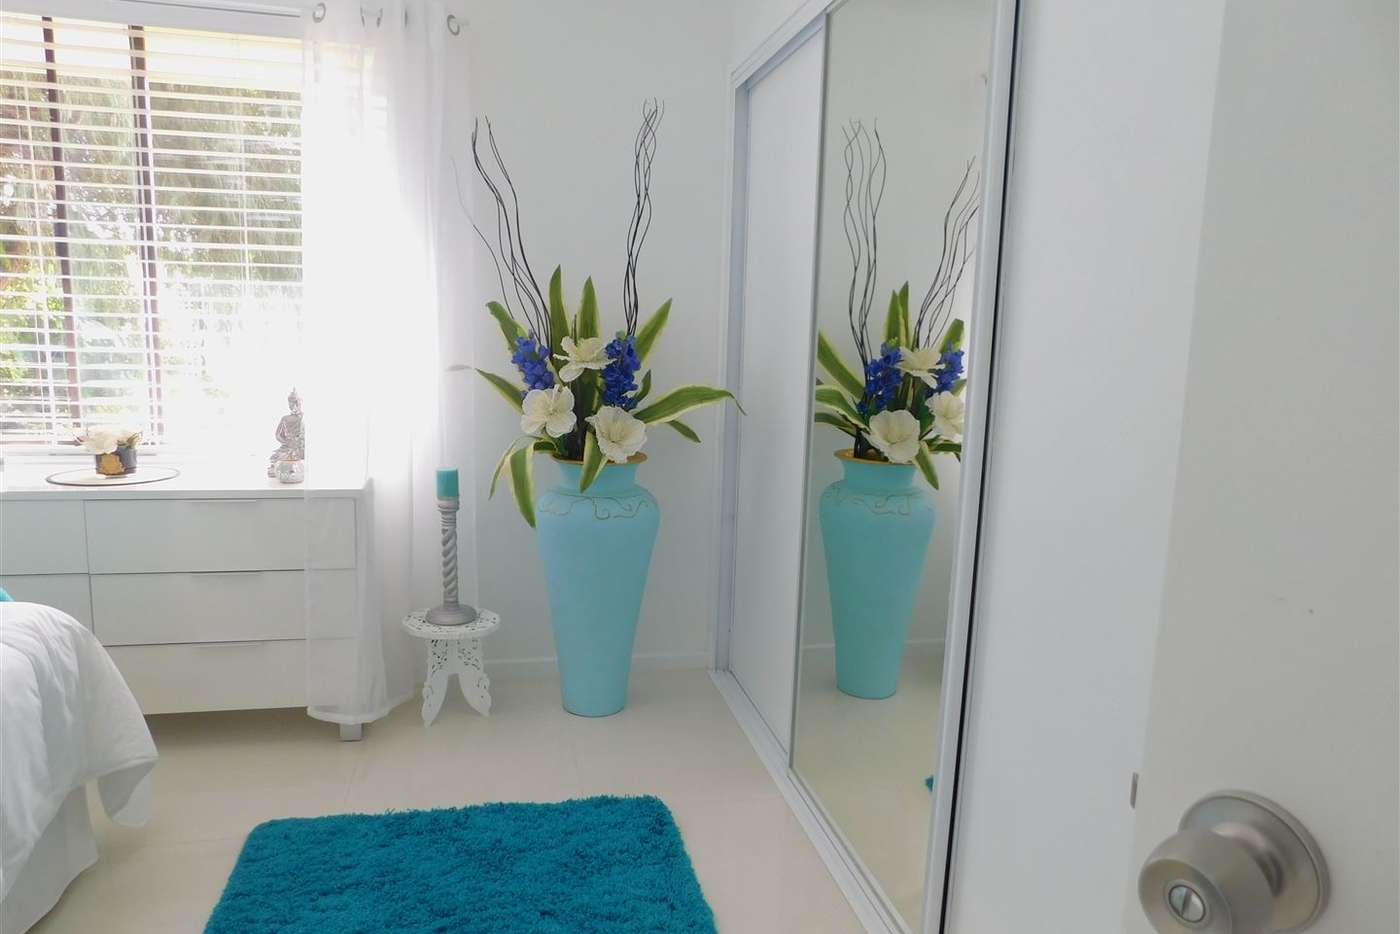 Seventh view of Homely house listing, 5 Delmage St, Dongara WA 6525